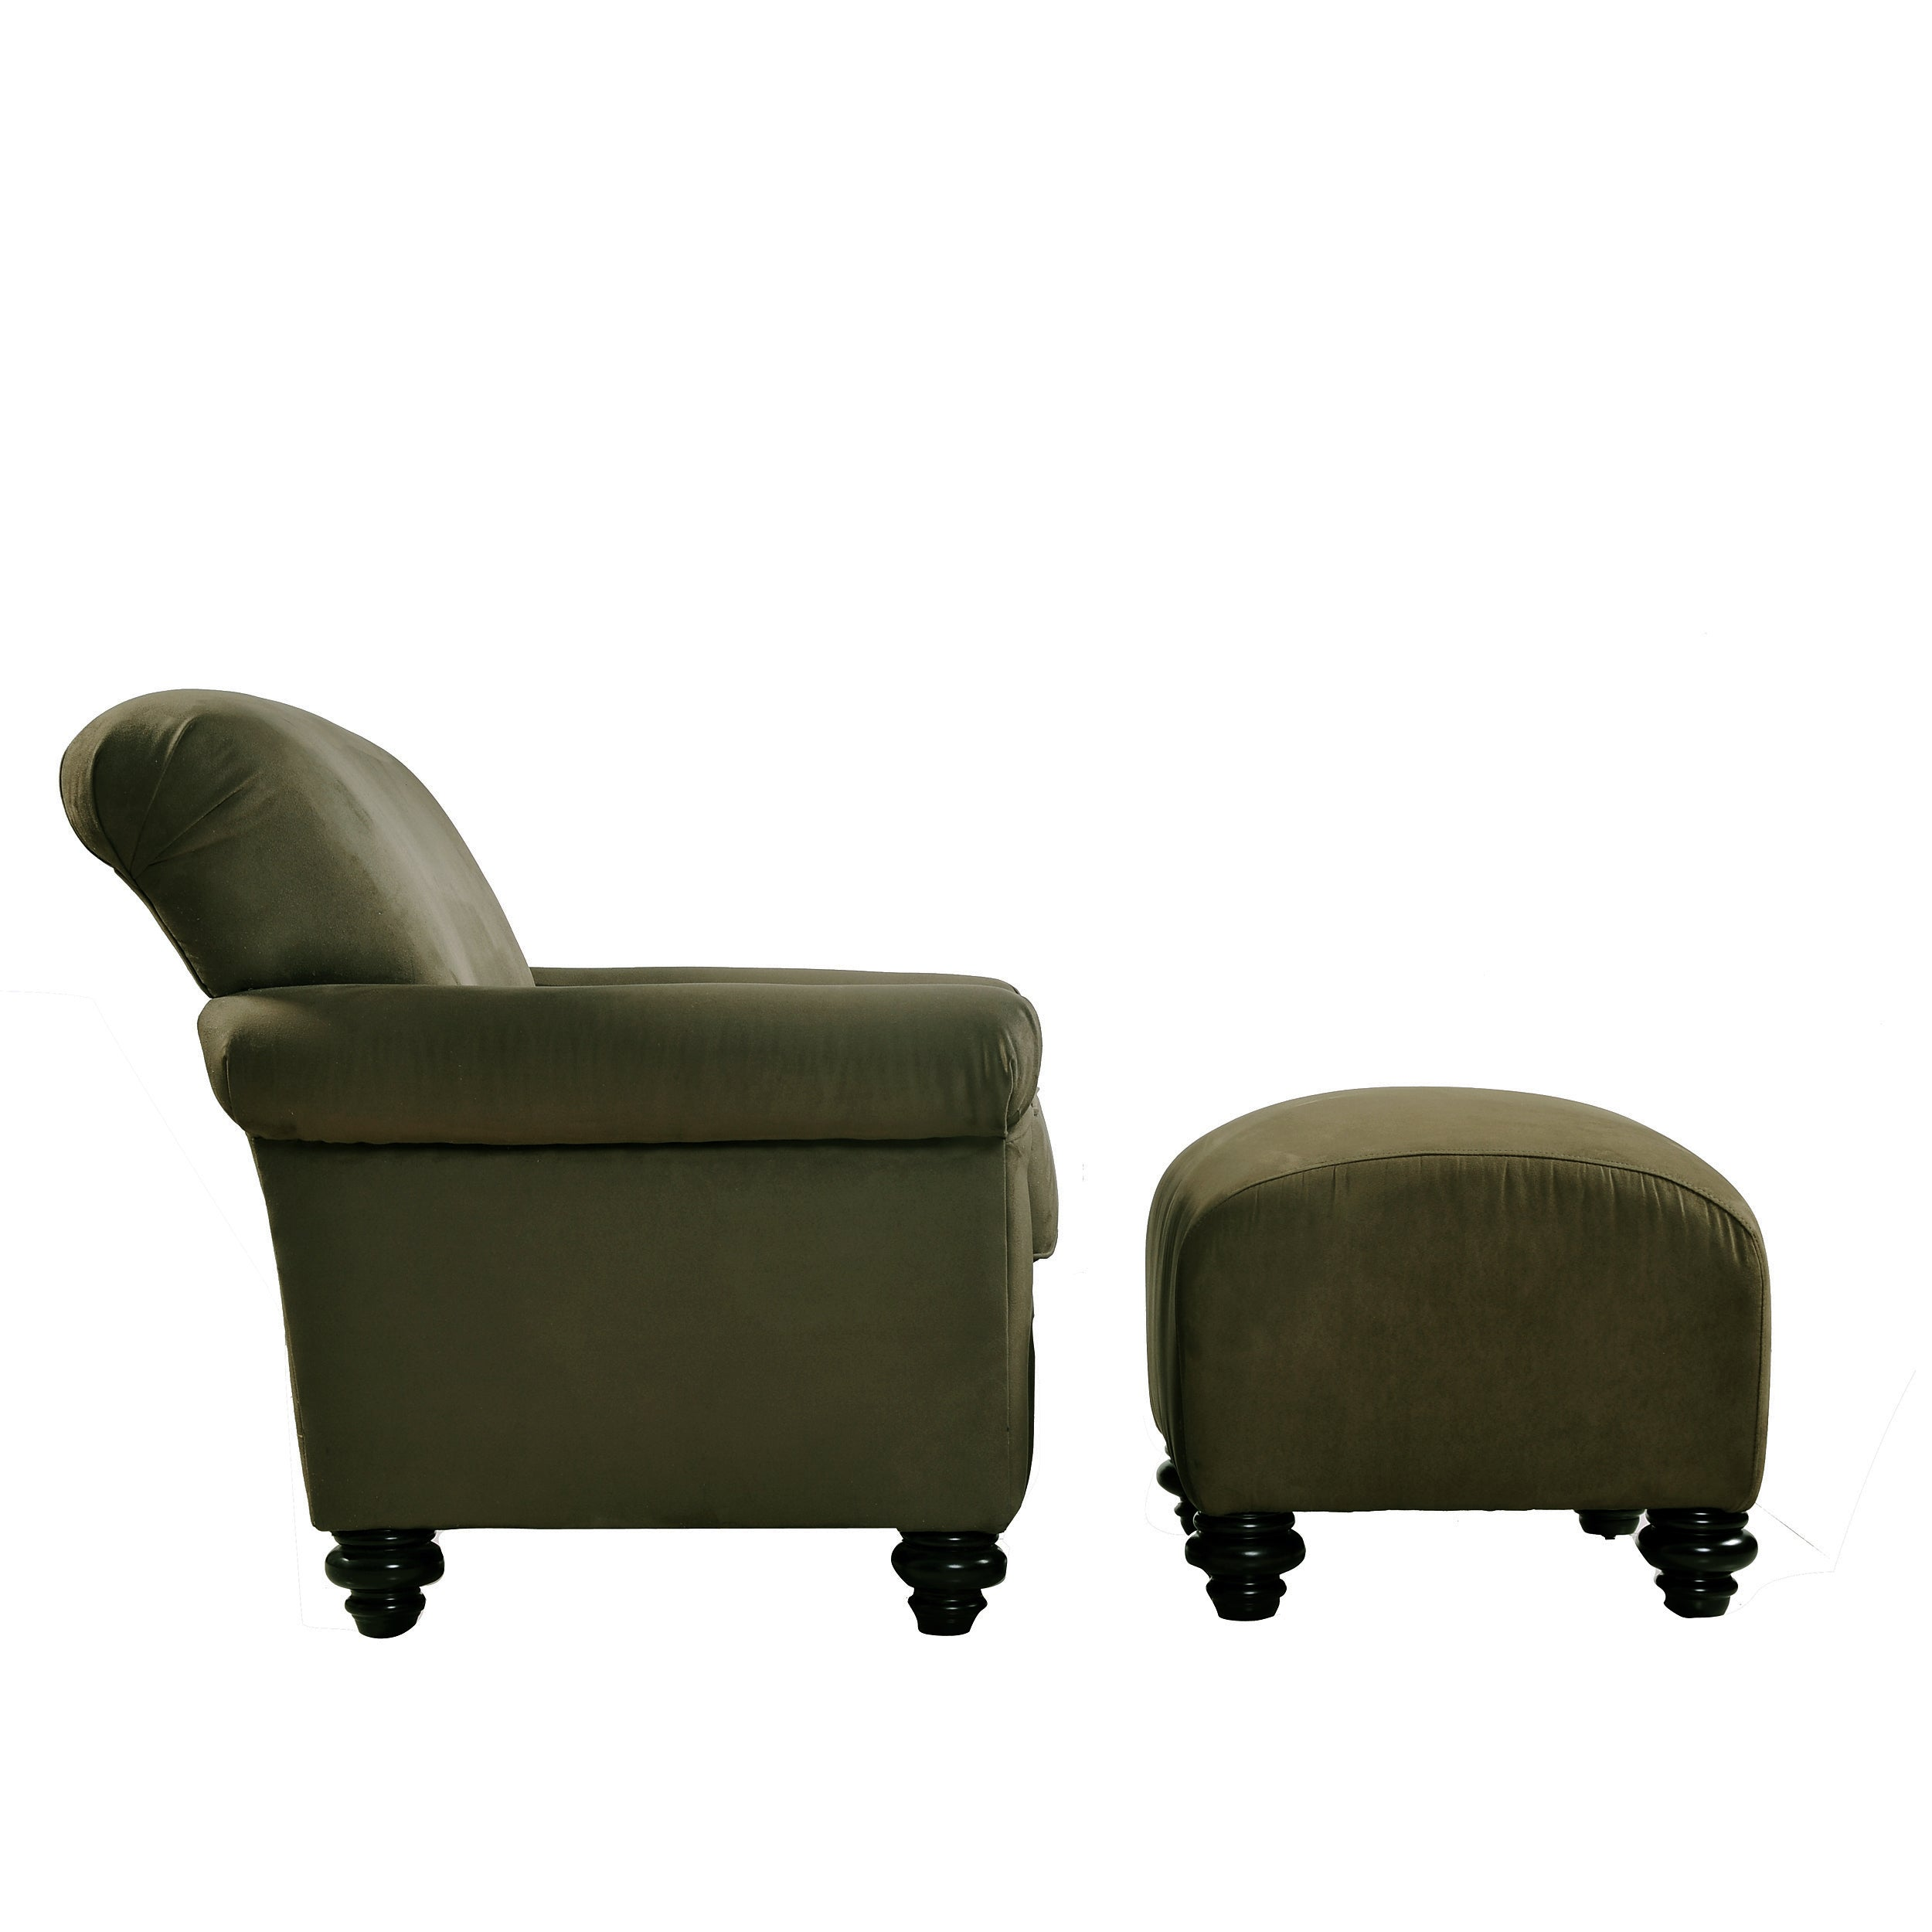 home shipping ottoman living chairs overstock linen today handy basil mira ottomans green product arm garden free portfolio and chair grey